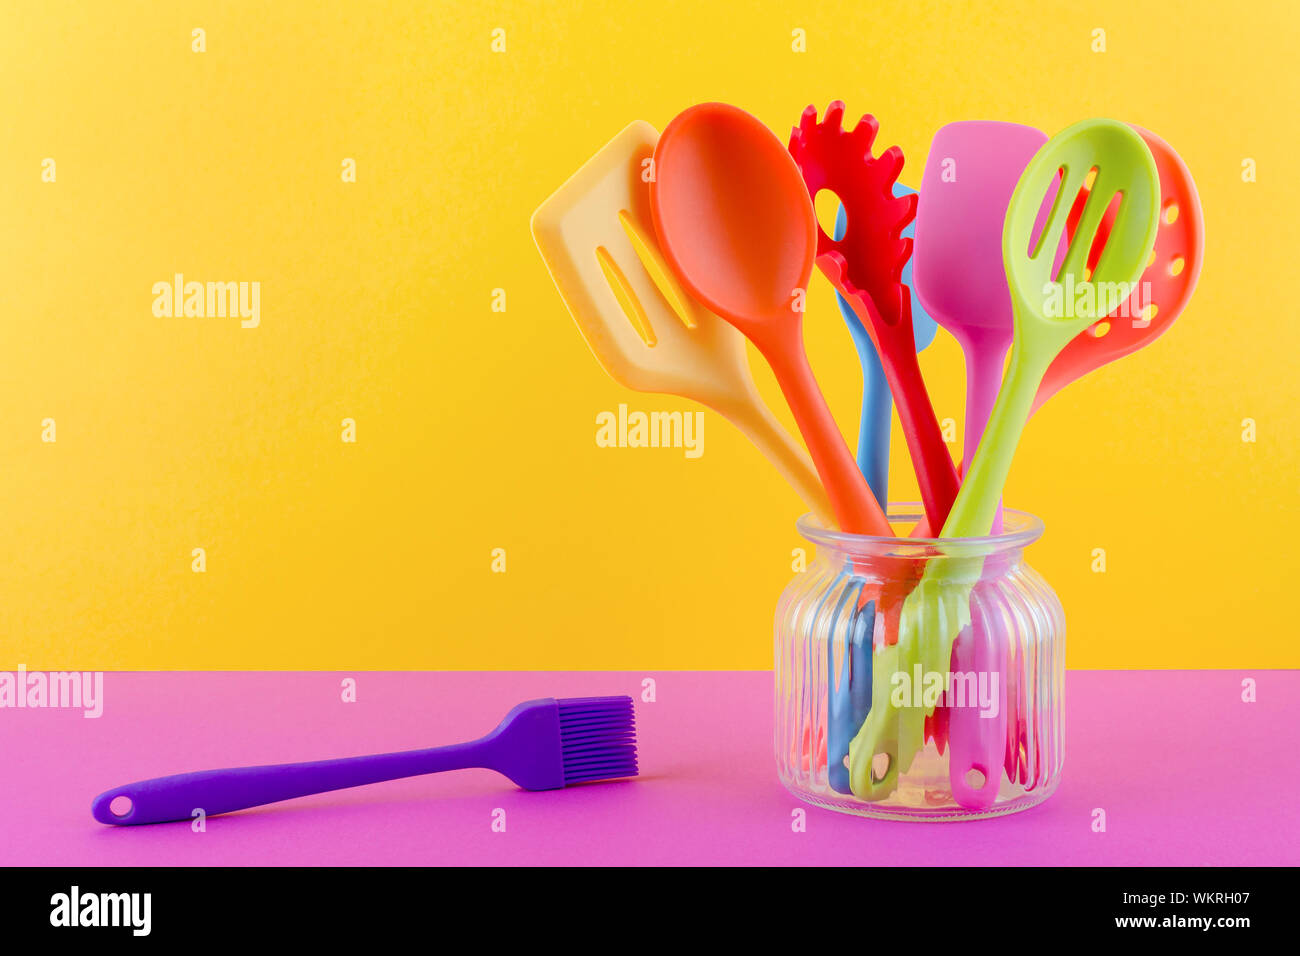 bright multi colored kitchen utensils on yellow background ...